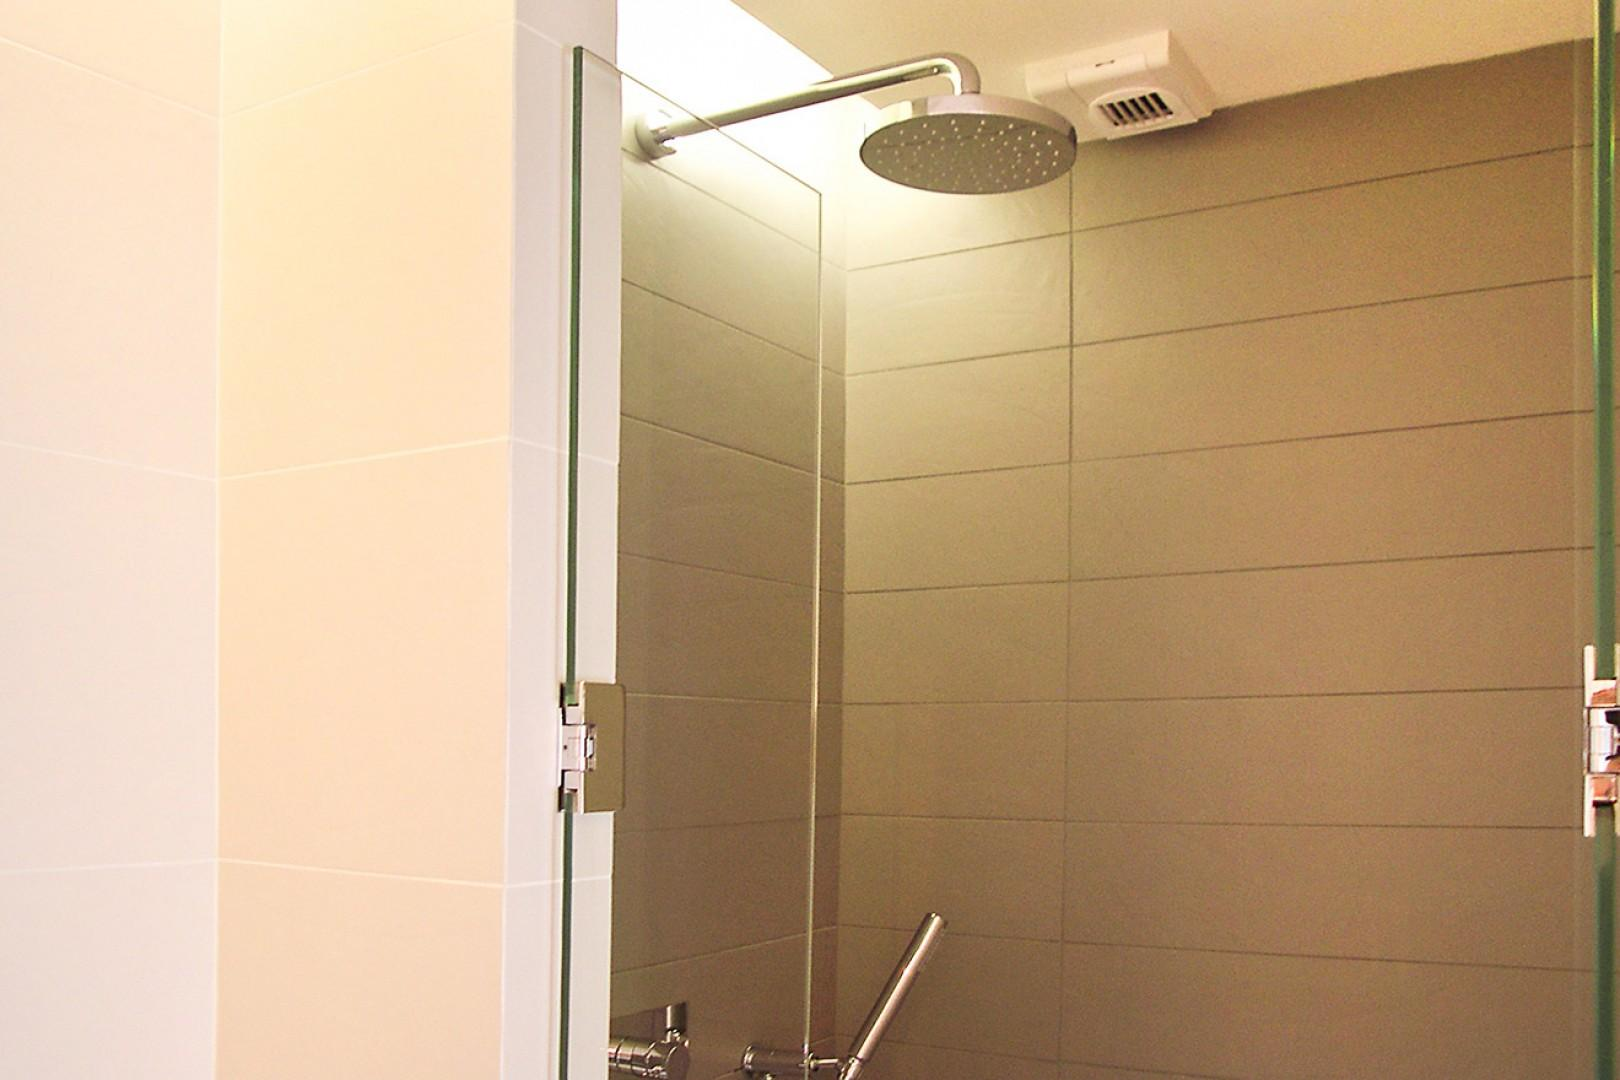 Start your day with an energizing shower!